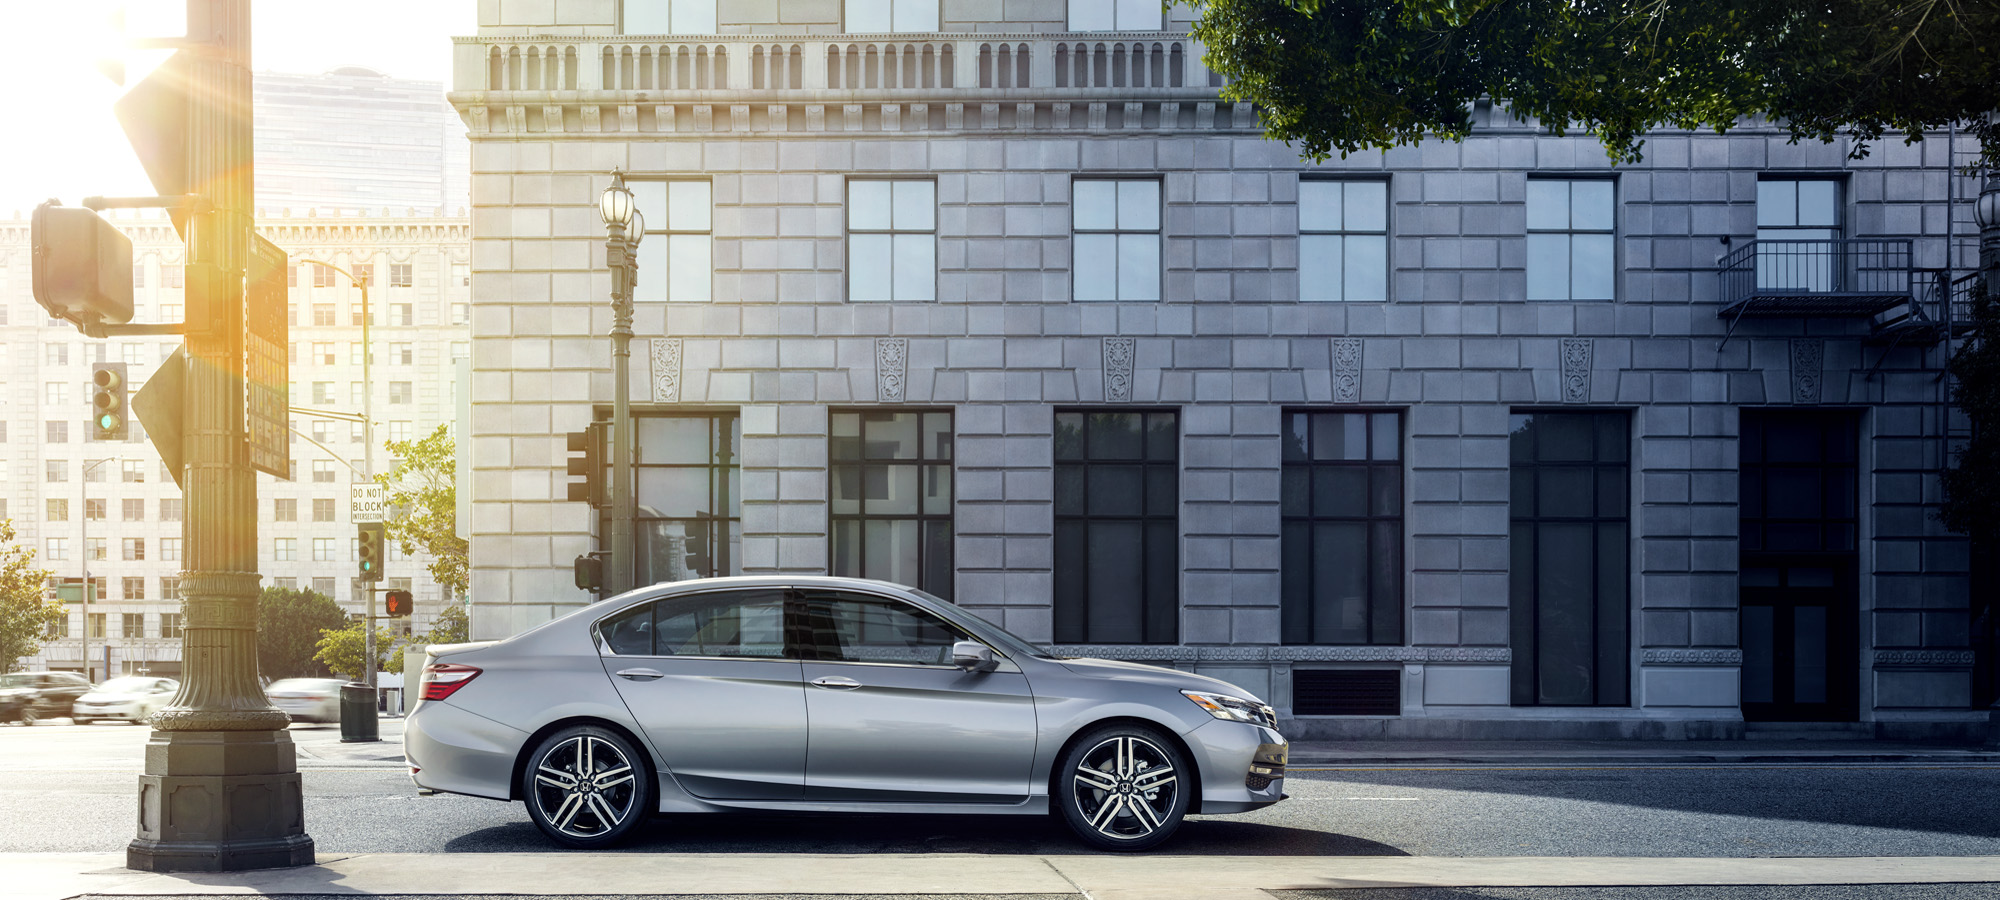 2016 Honda Accord Touring For Sale in Waukesha, WI